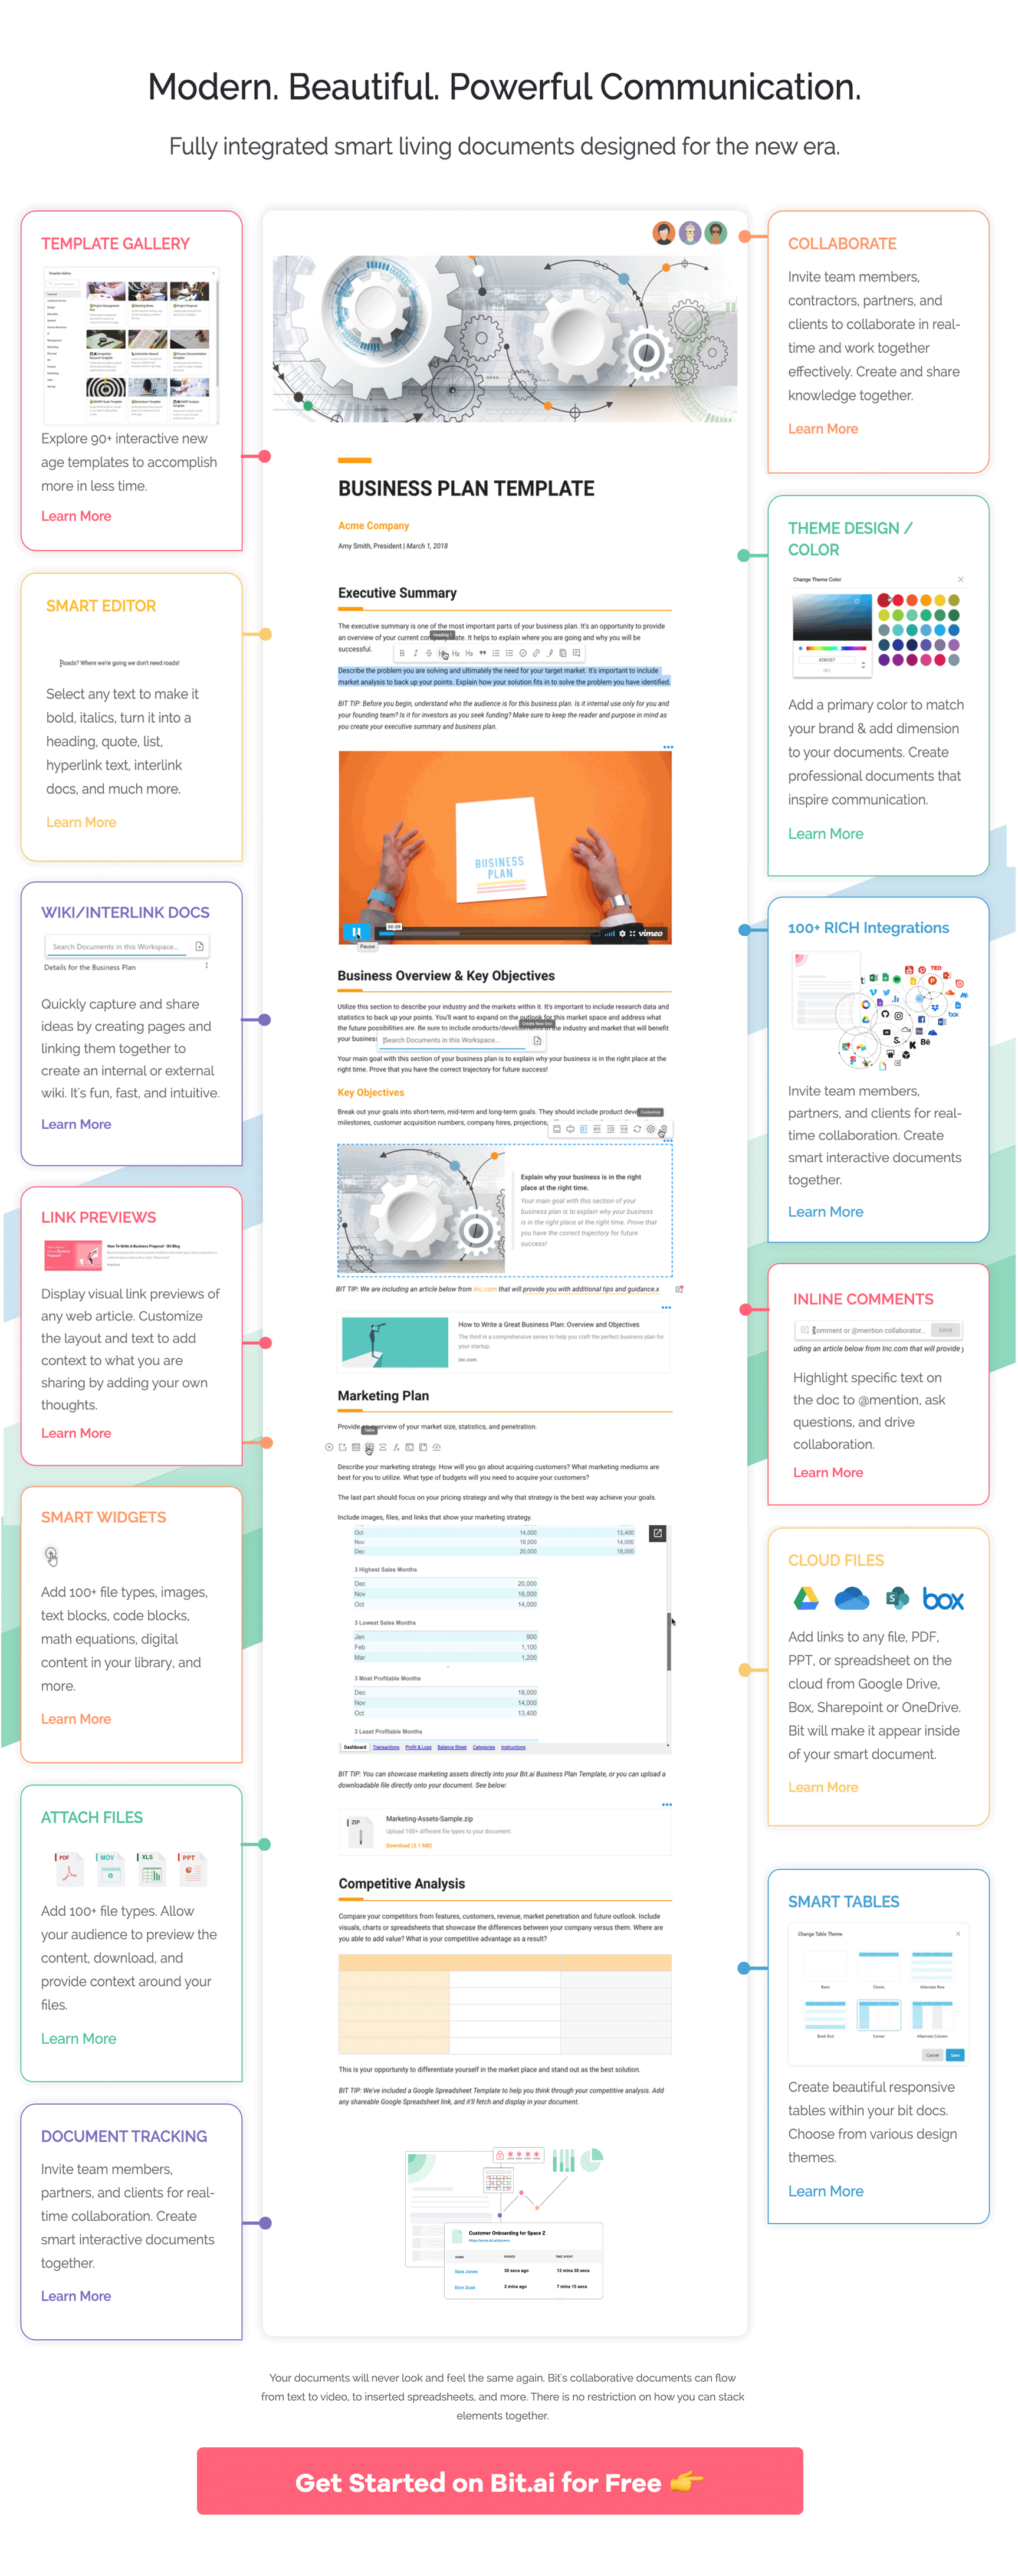 Bit features infographic